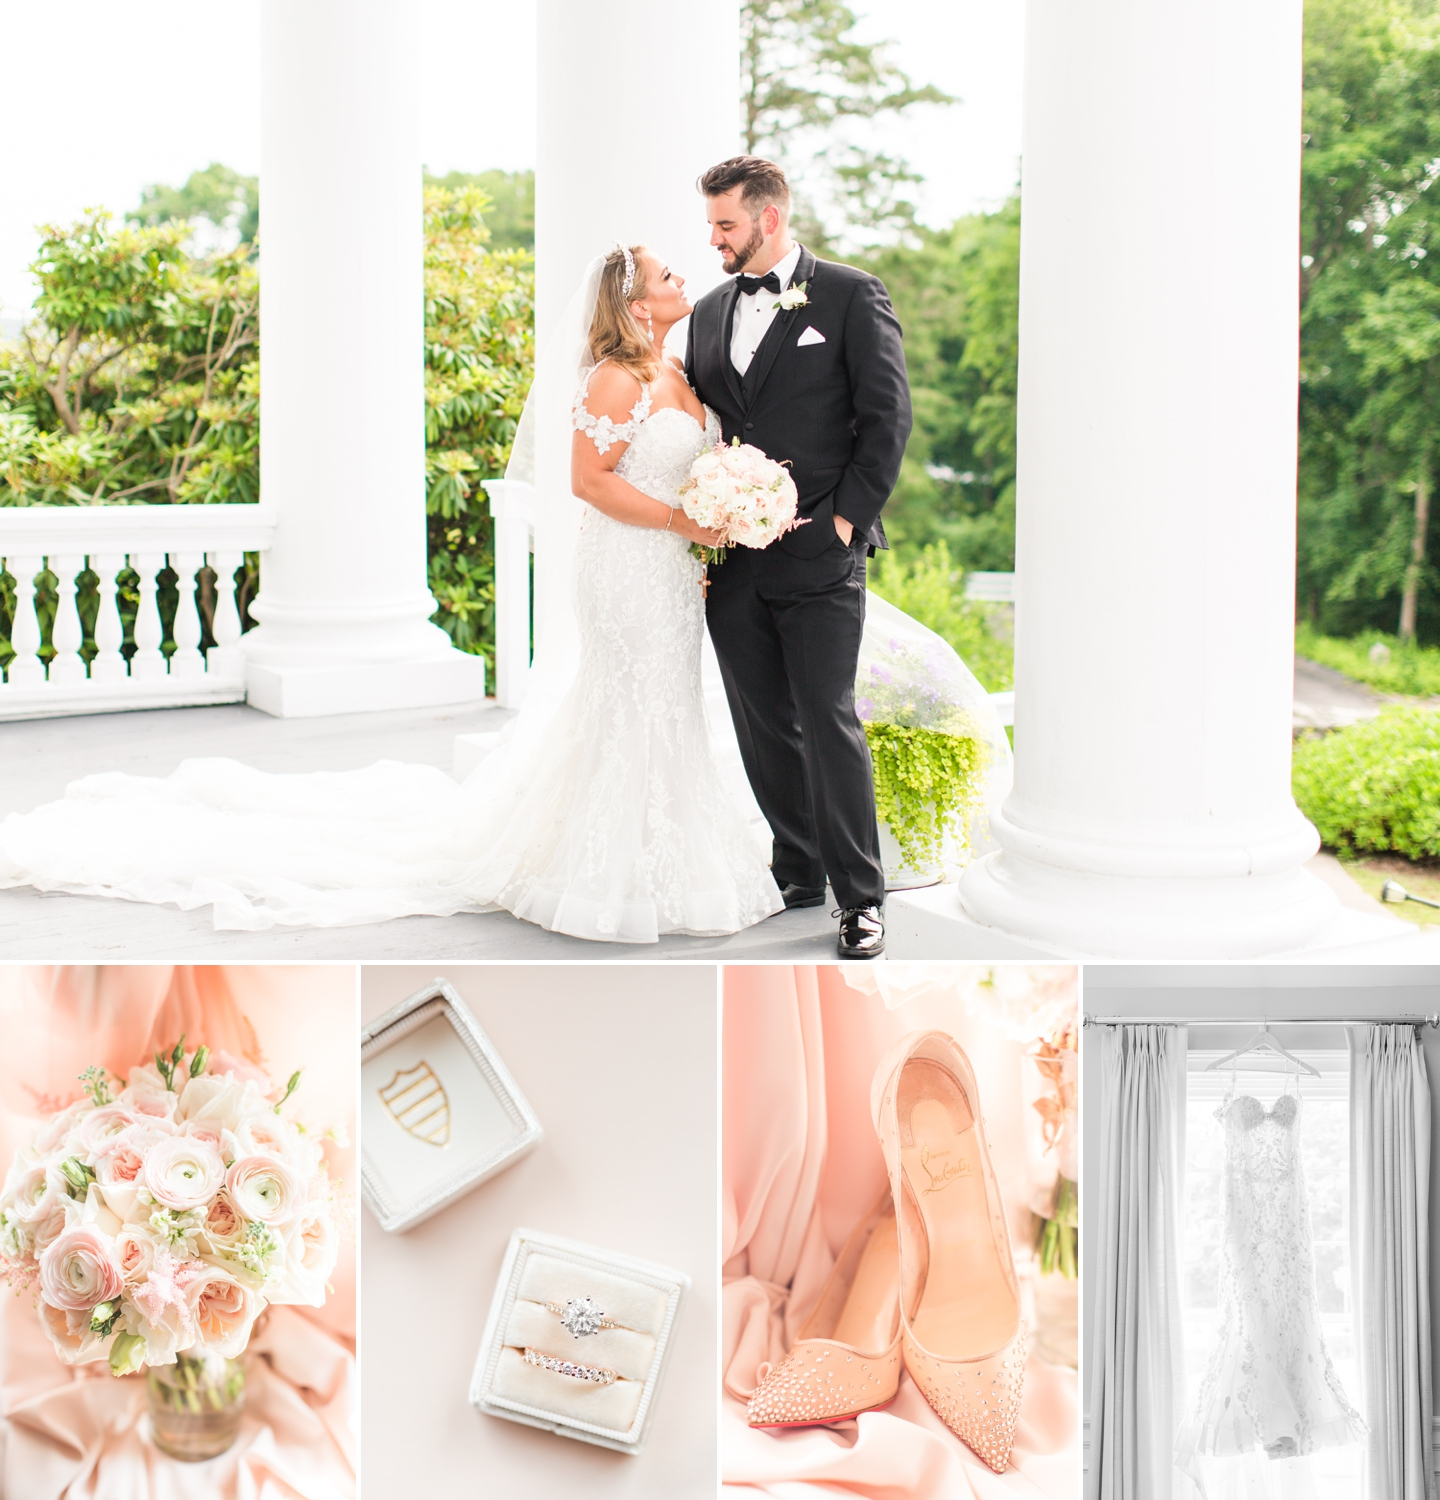 haley-mansion-wedding-inn-at-mystic-connecticut-photographer-shaina-lee-photography-photo-cover.jpg